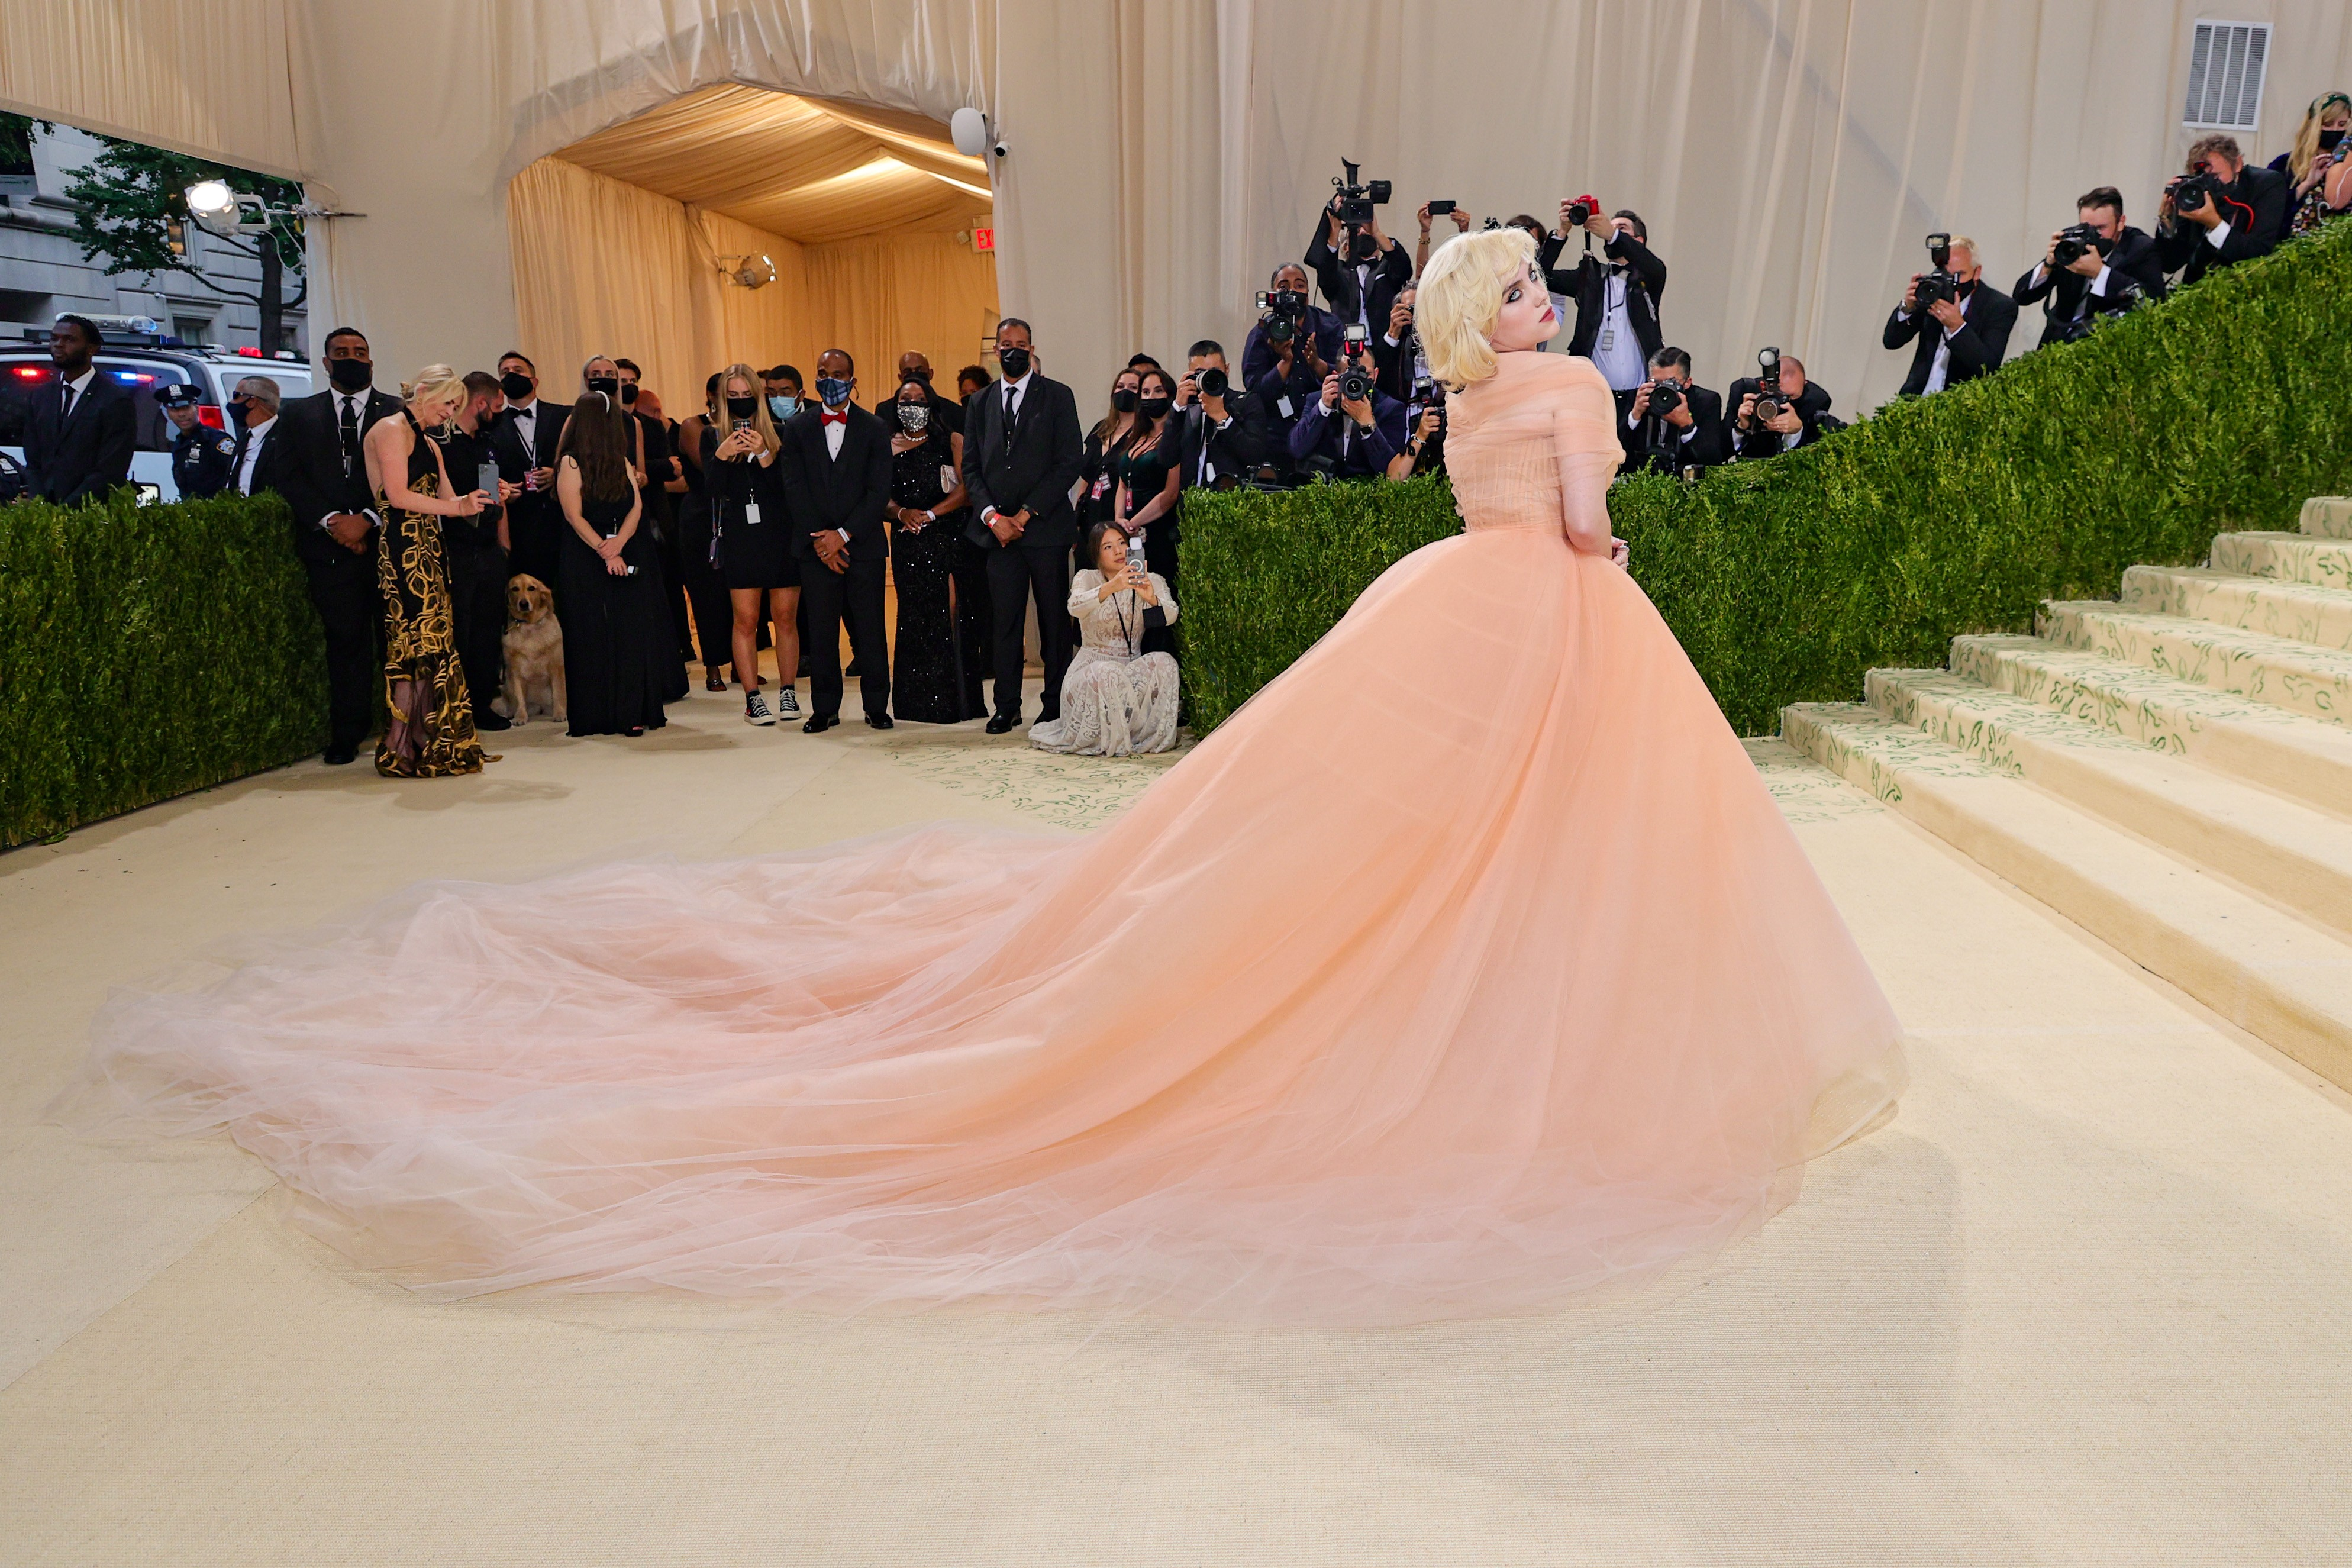 NEW YORK, NEW YORK - SEPTEMBER 13: Co-chair Billie Eilish attends The 2021 Met Gala Celebrating In America: A Lexicon Of Fashion at Metropolitan Museum of Art on September 13, 2021 in New York City. (Photo by Theo Wargo/Getty Images) (Foto: Getty Images)